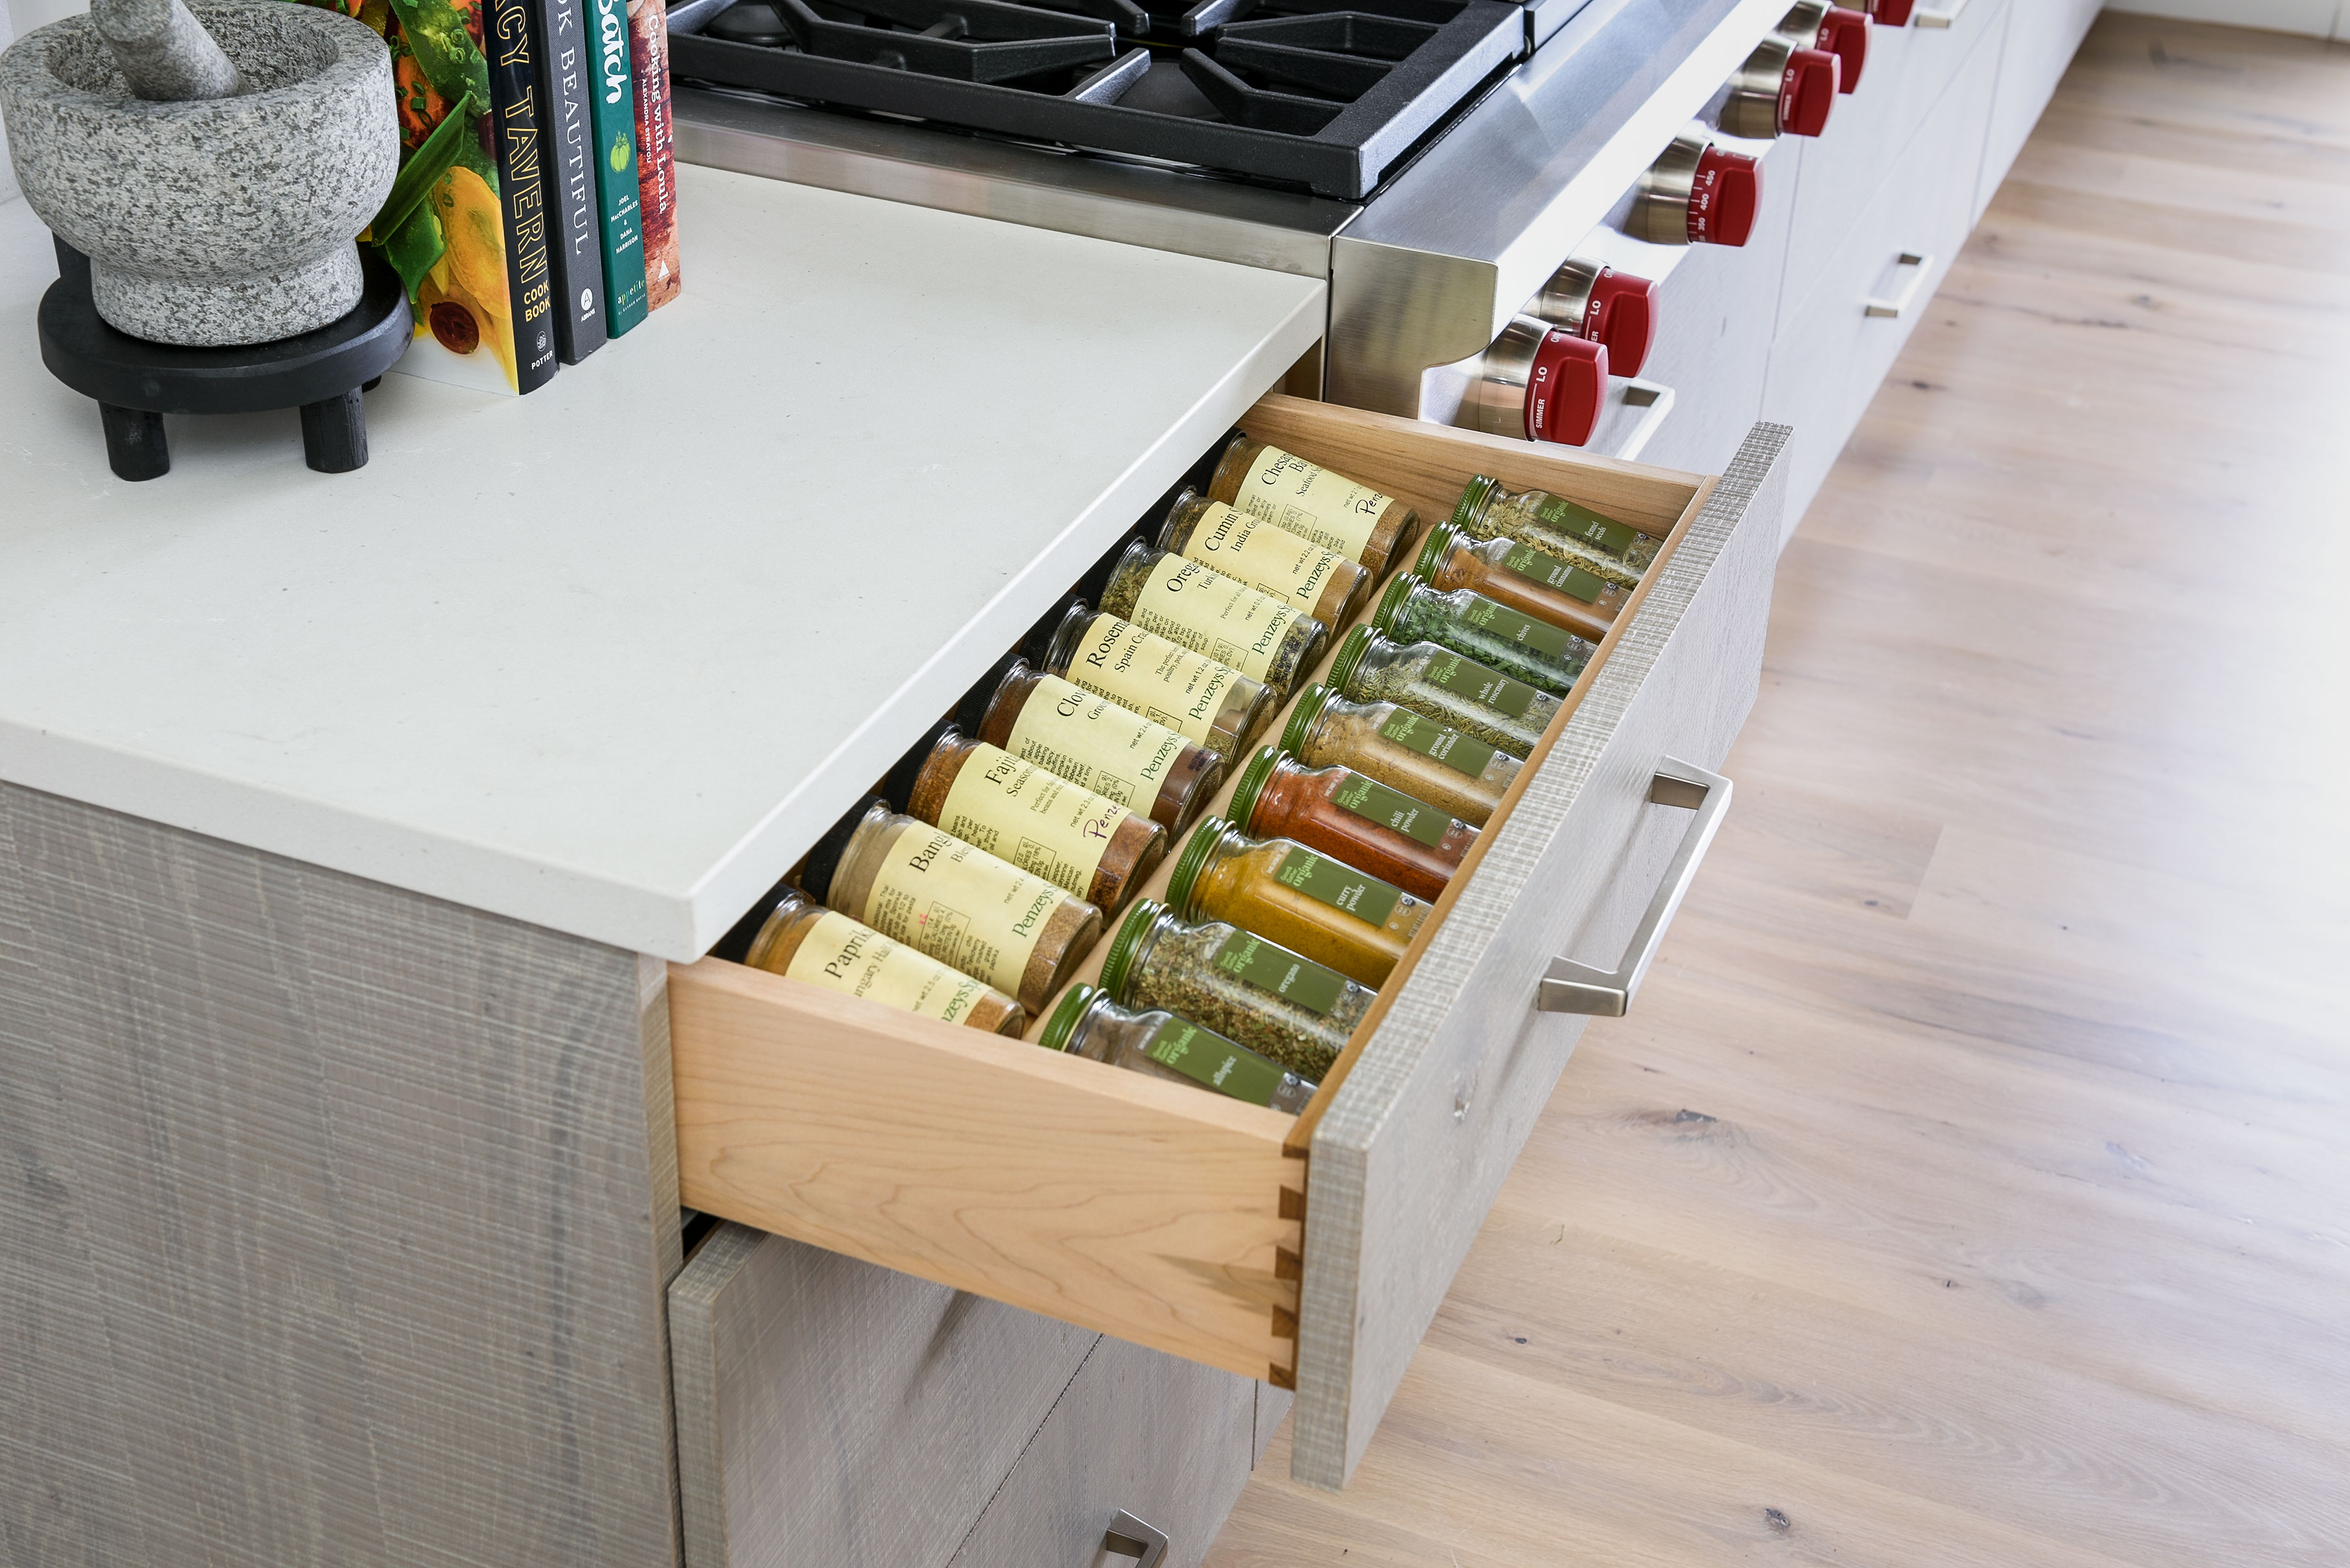 A newly renovated kitchen with a drawer open, filled with spices. A mortar and pestle and cookbooks sit on the counter.